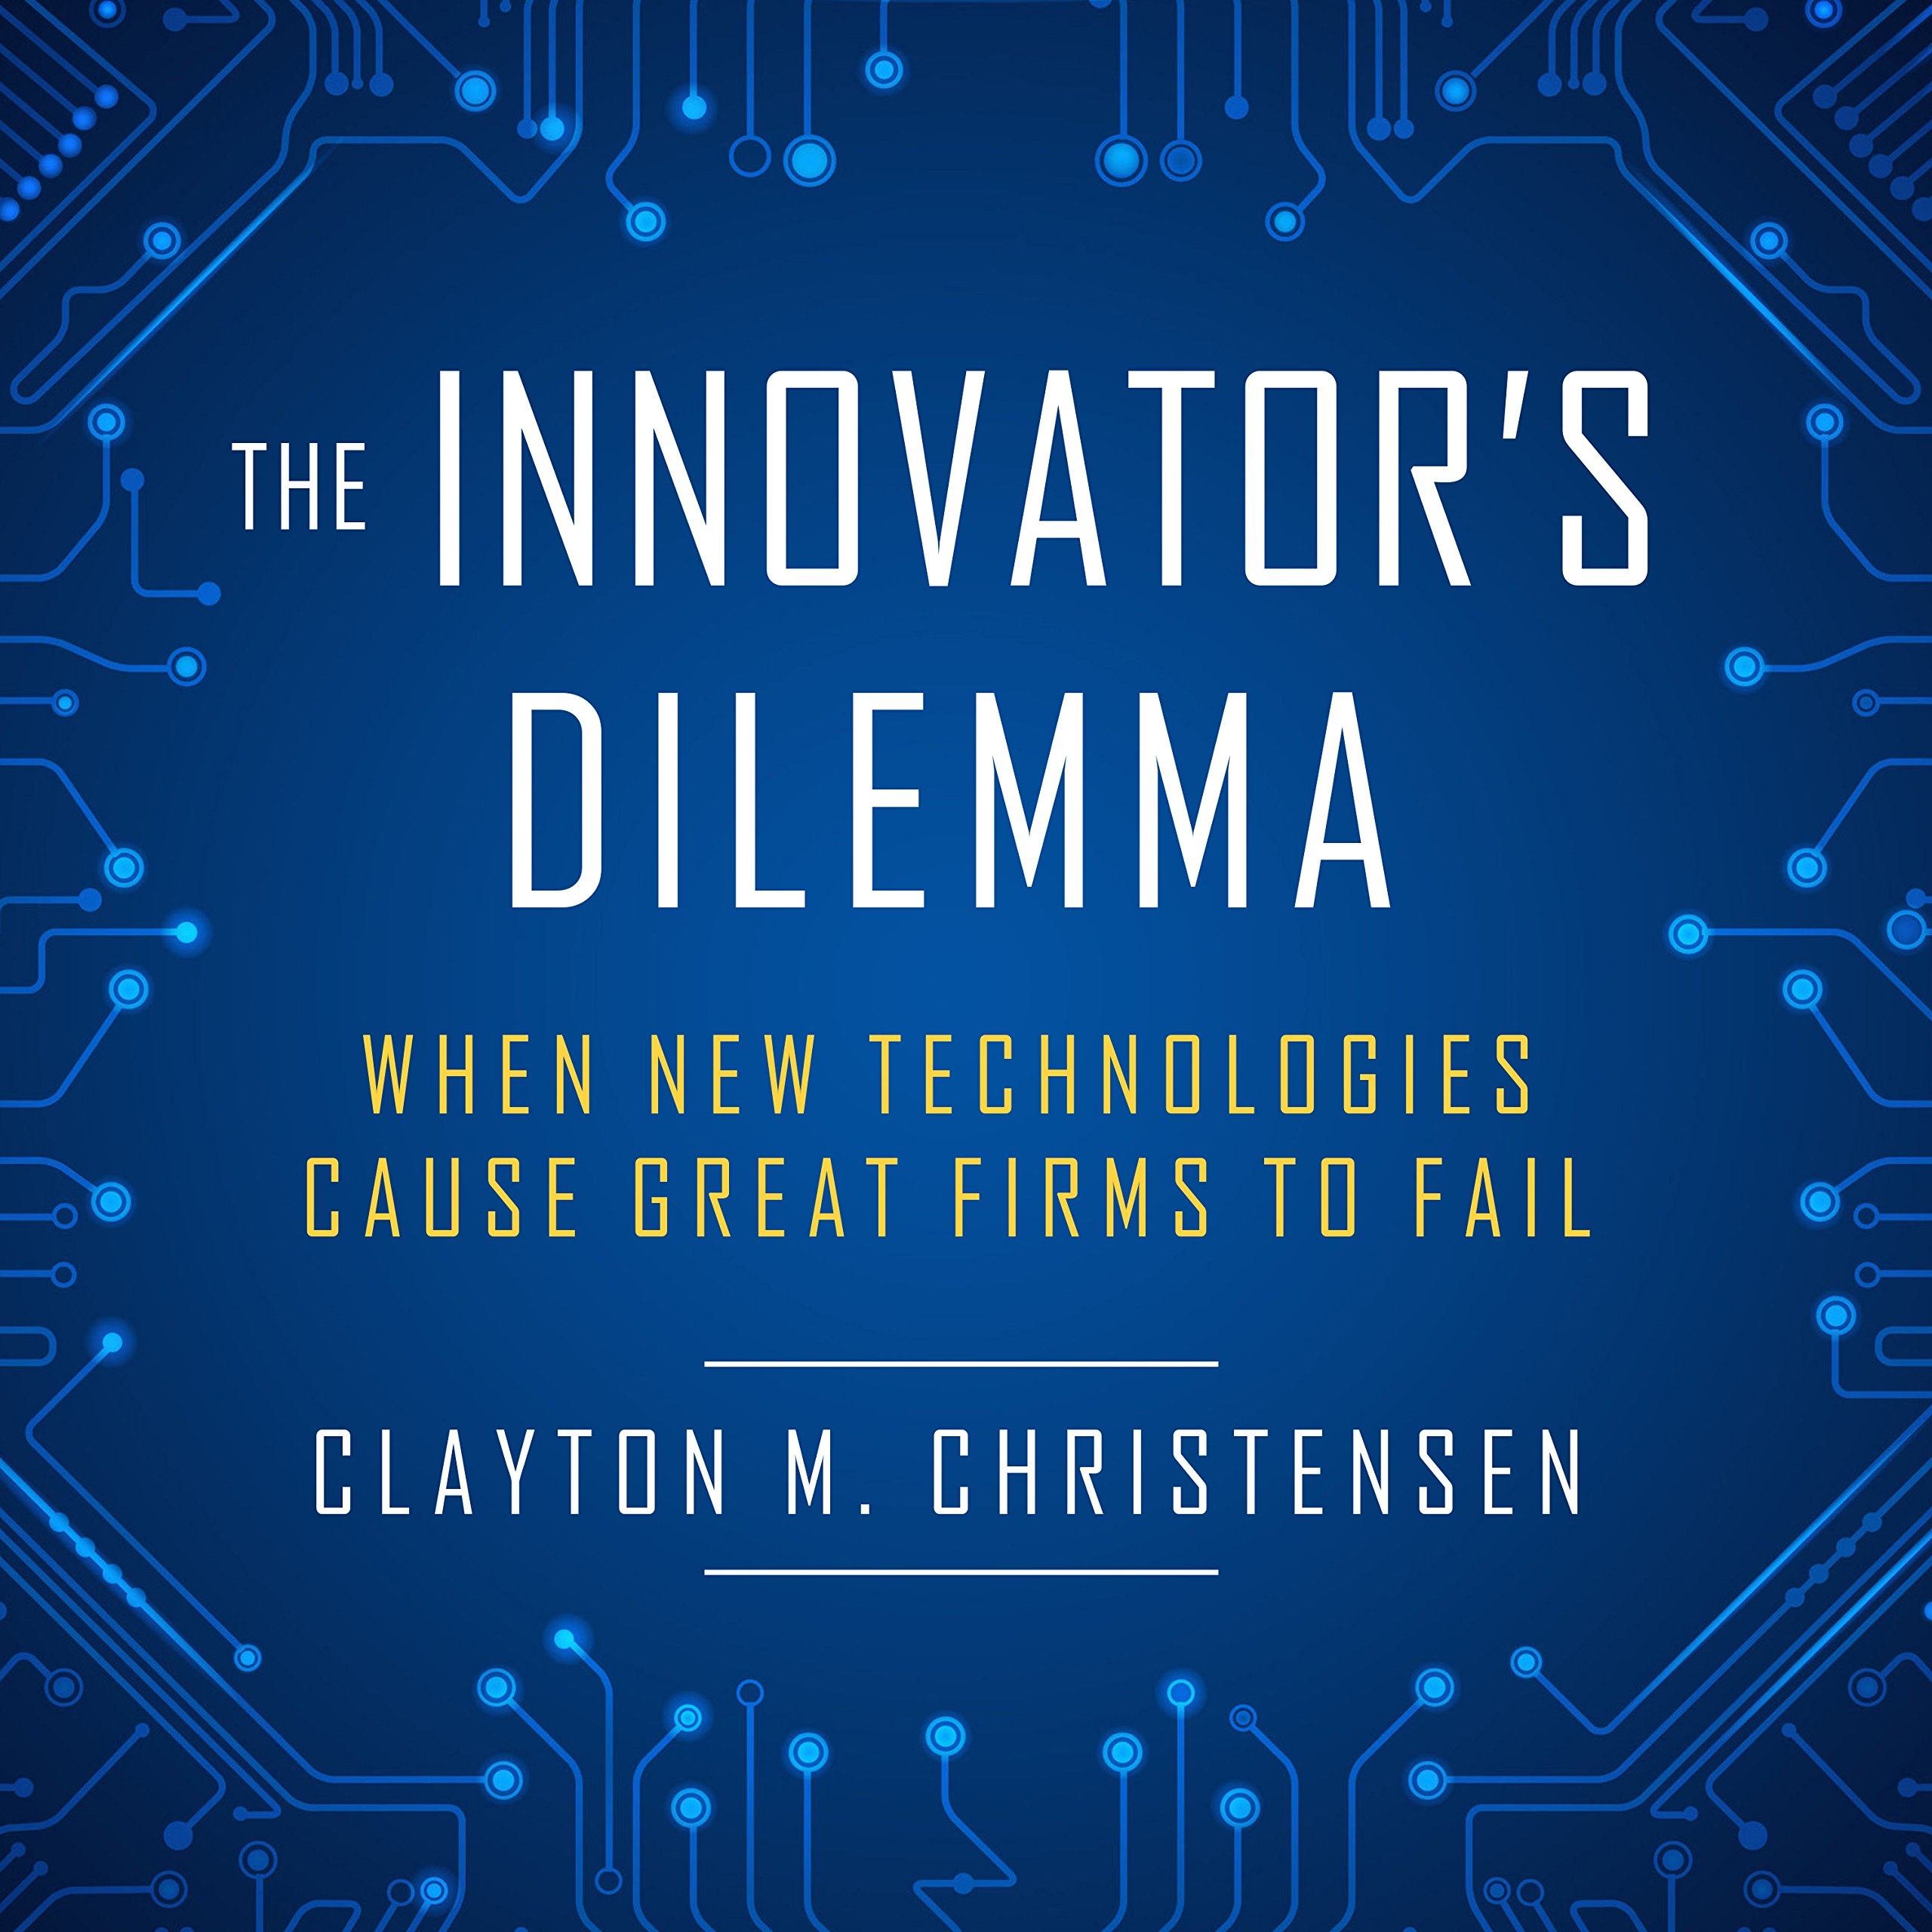 The Innovator's Dilemma: When New Technologies Cause Great Firms to Fail pdf